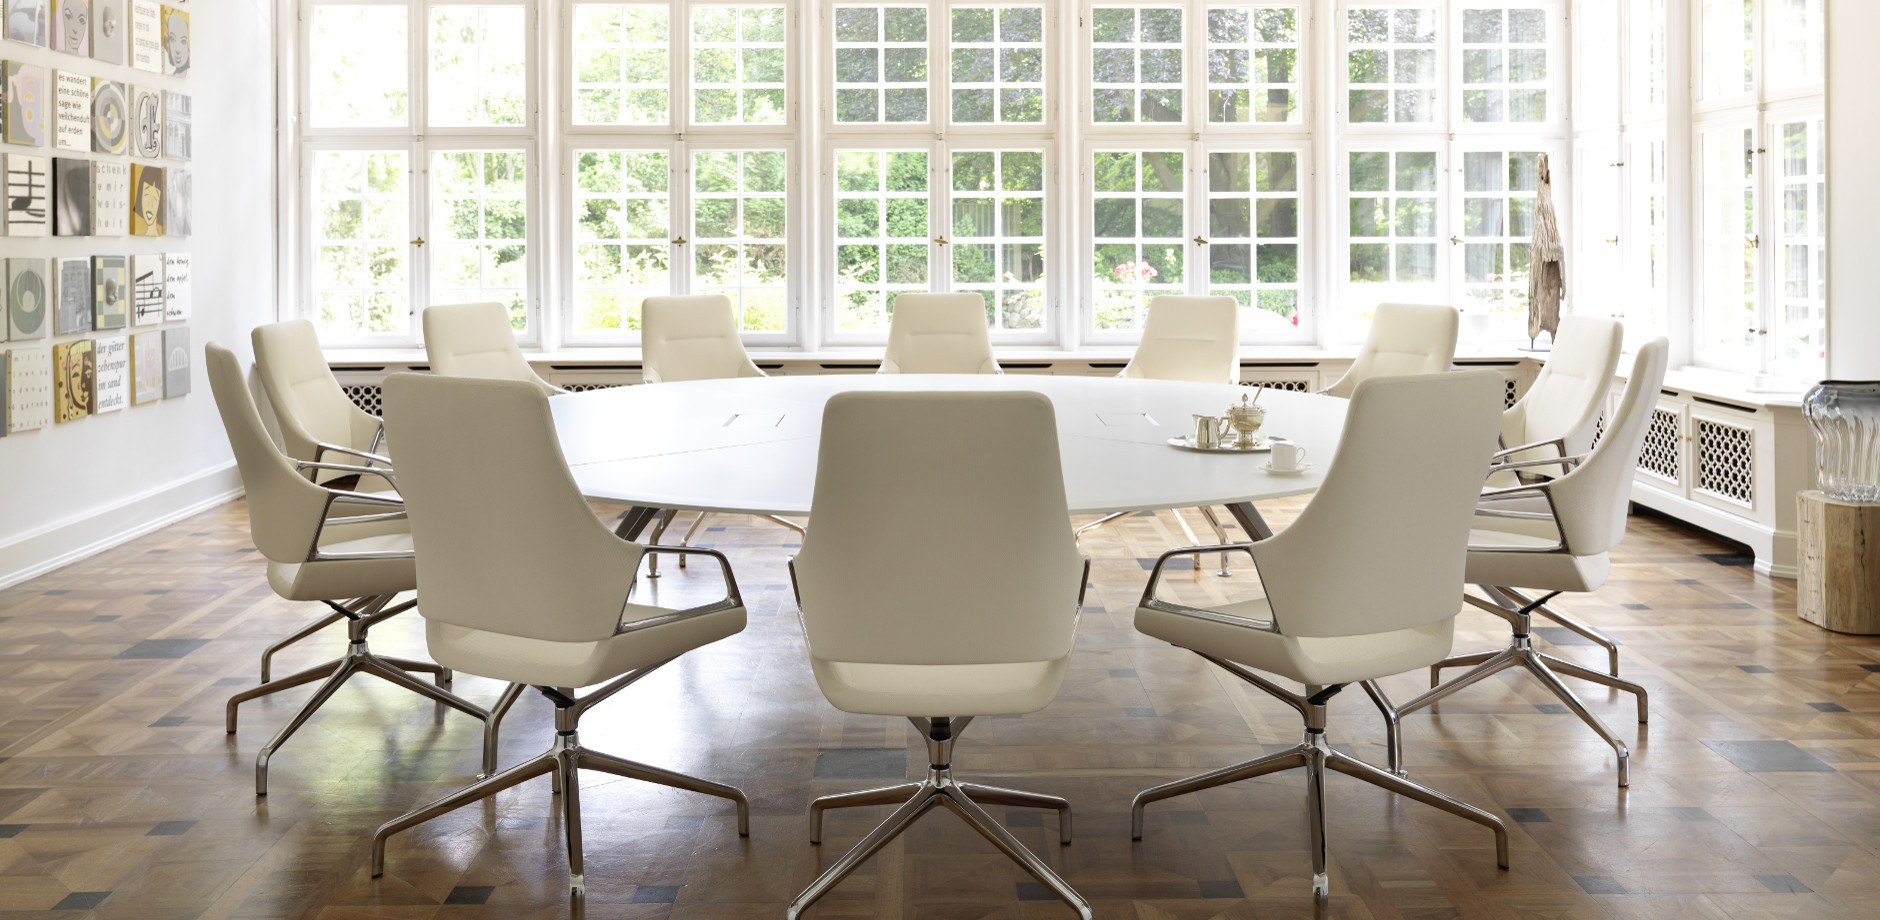 conference table graph static meeting table office. Black Bedroom Furniture Sets. Home Design Ideas